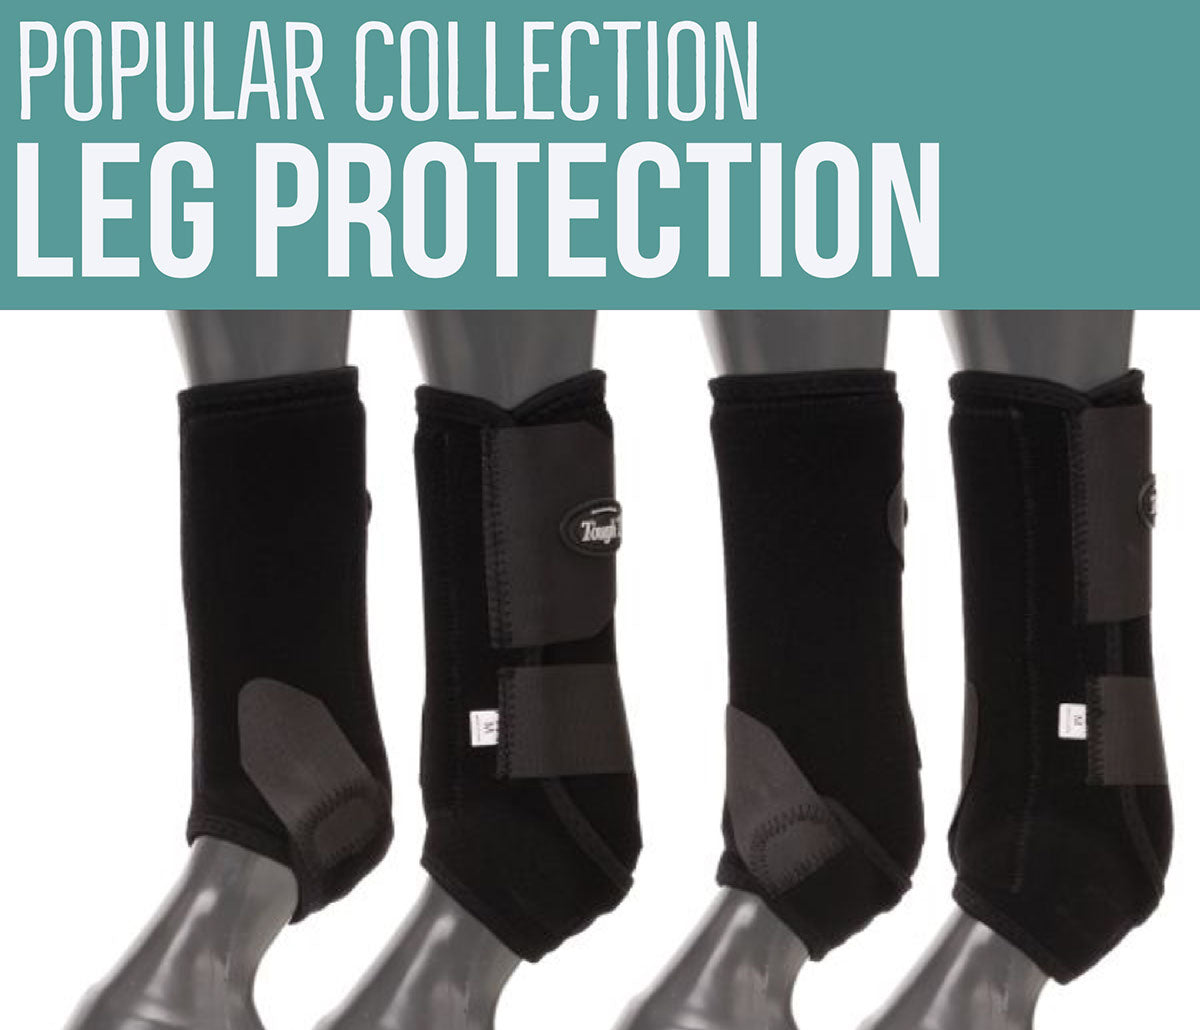 Draft Warmblood Horse Leg Protection Boots